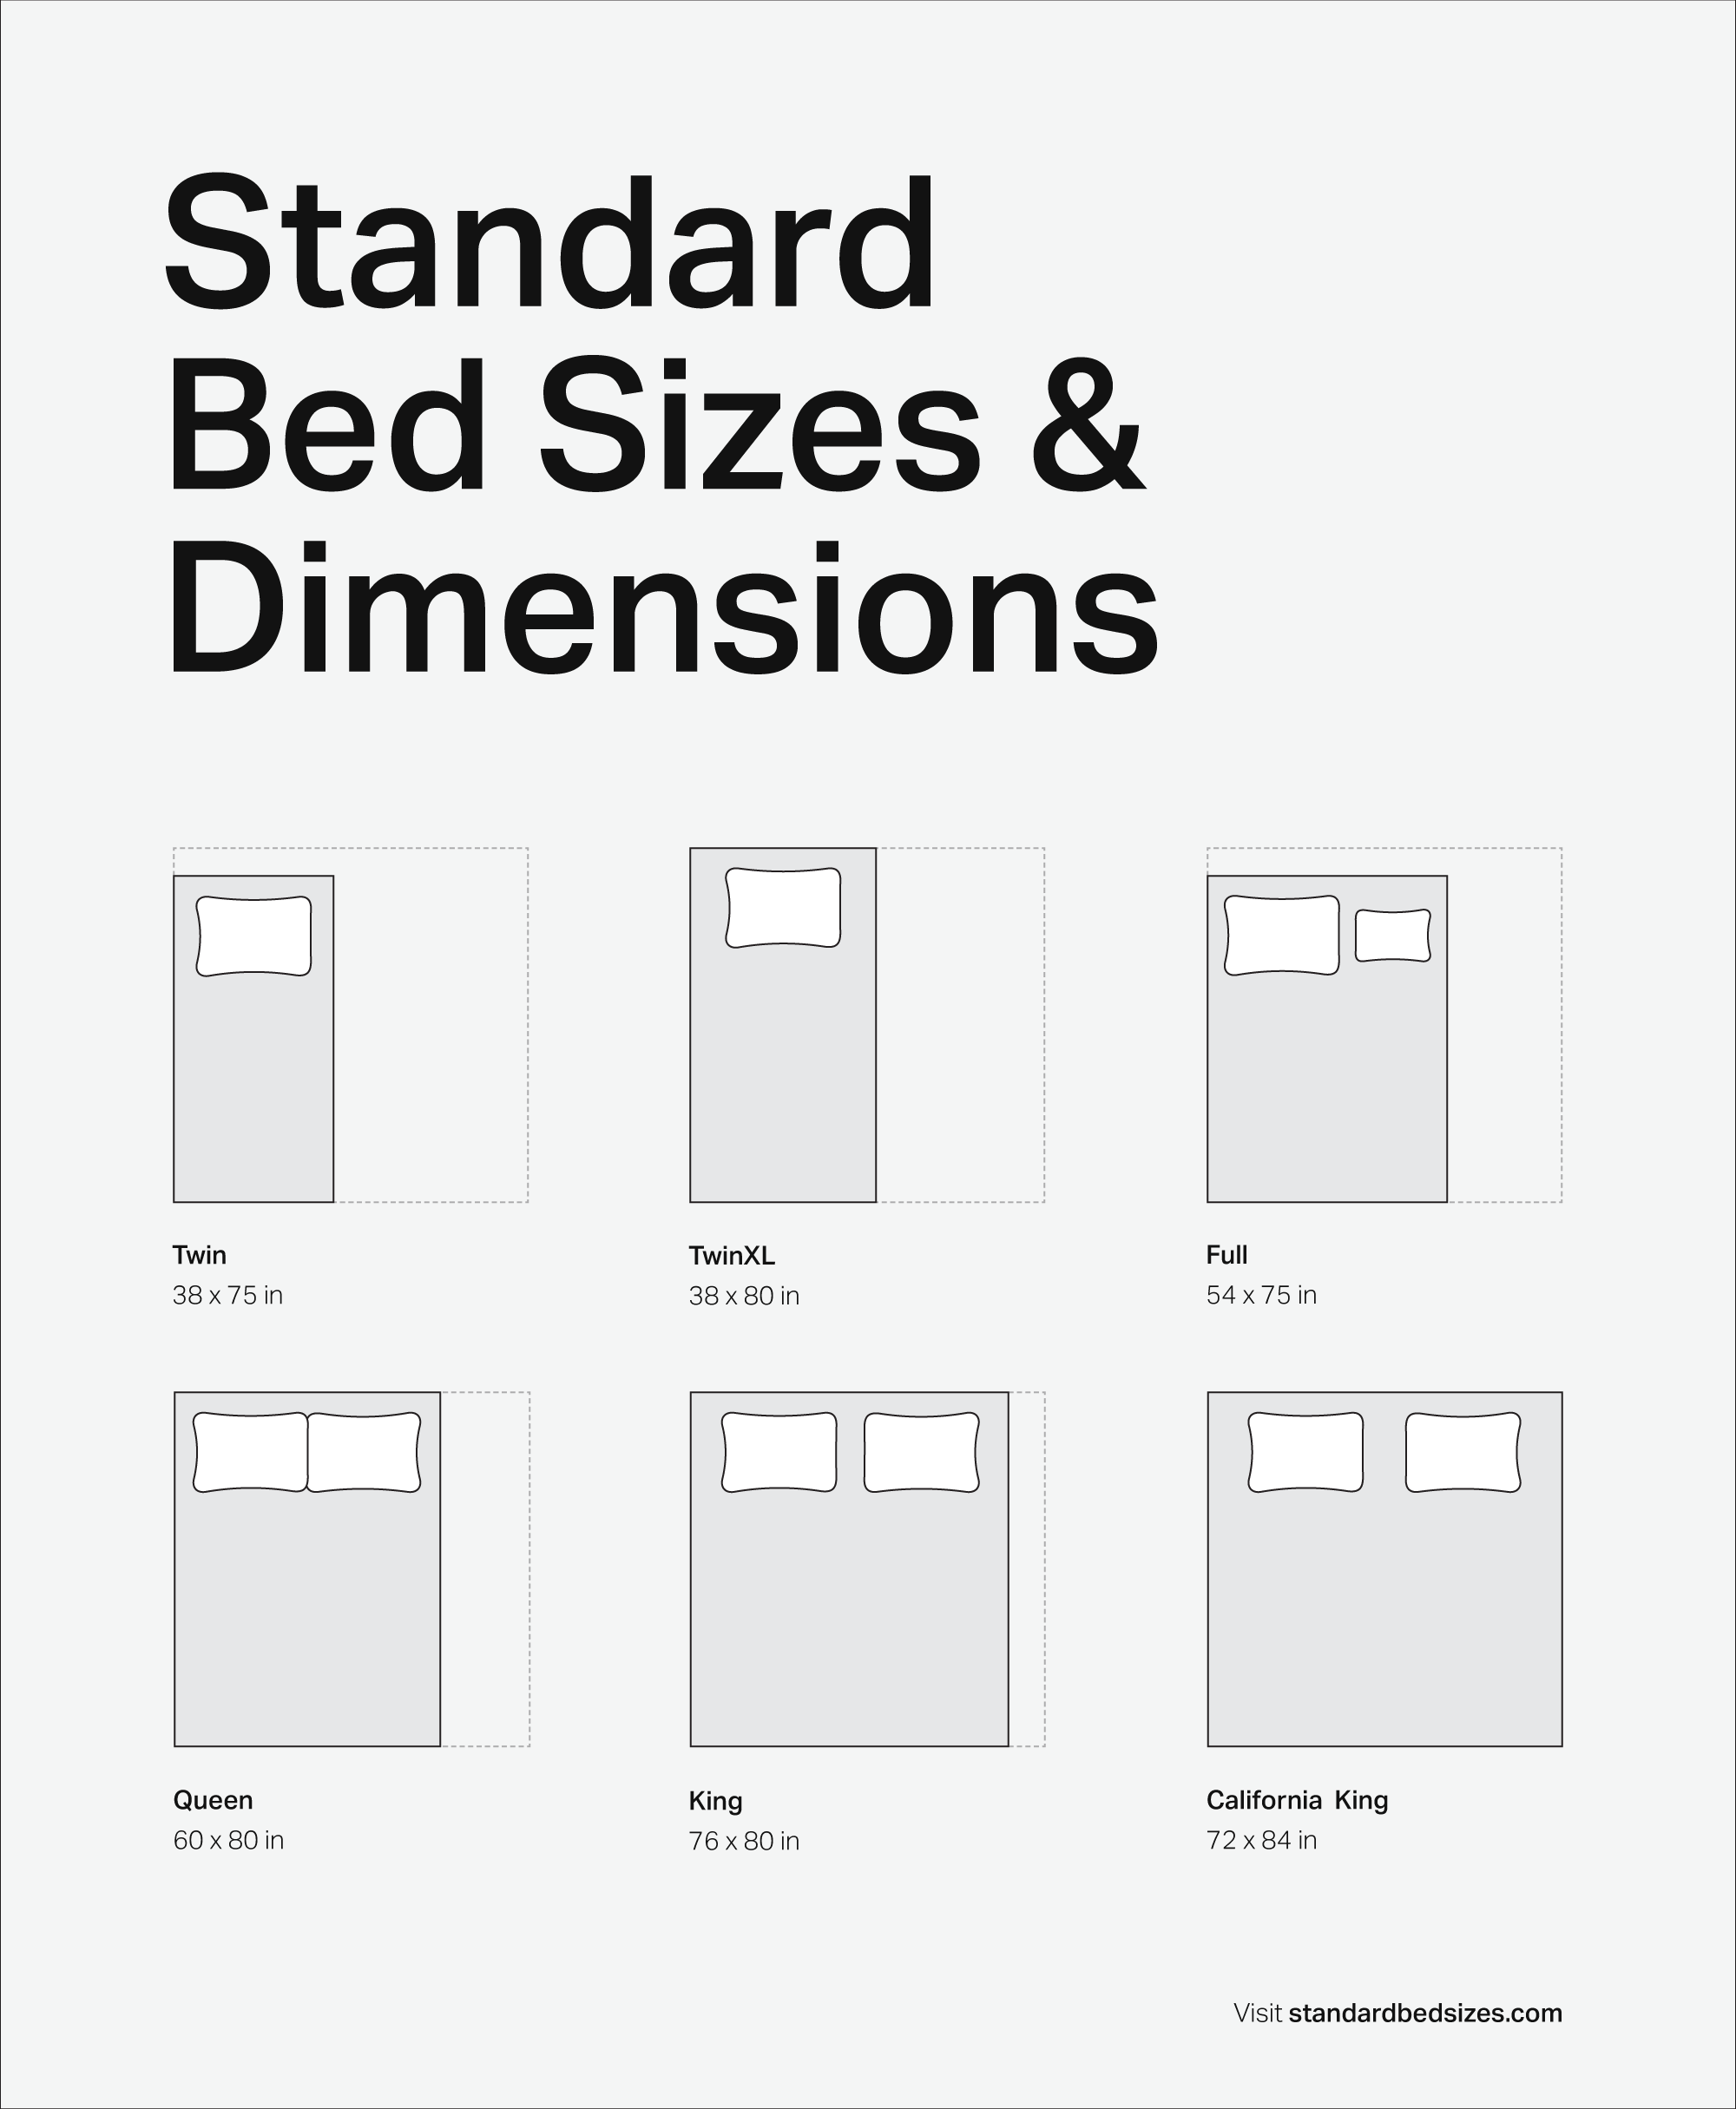 Bed Sizes Dimensions Guide Standardbedsizes Com In 2020 Bed